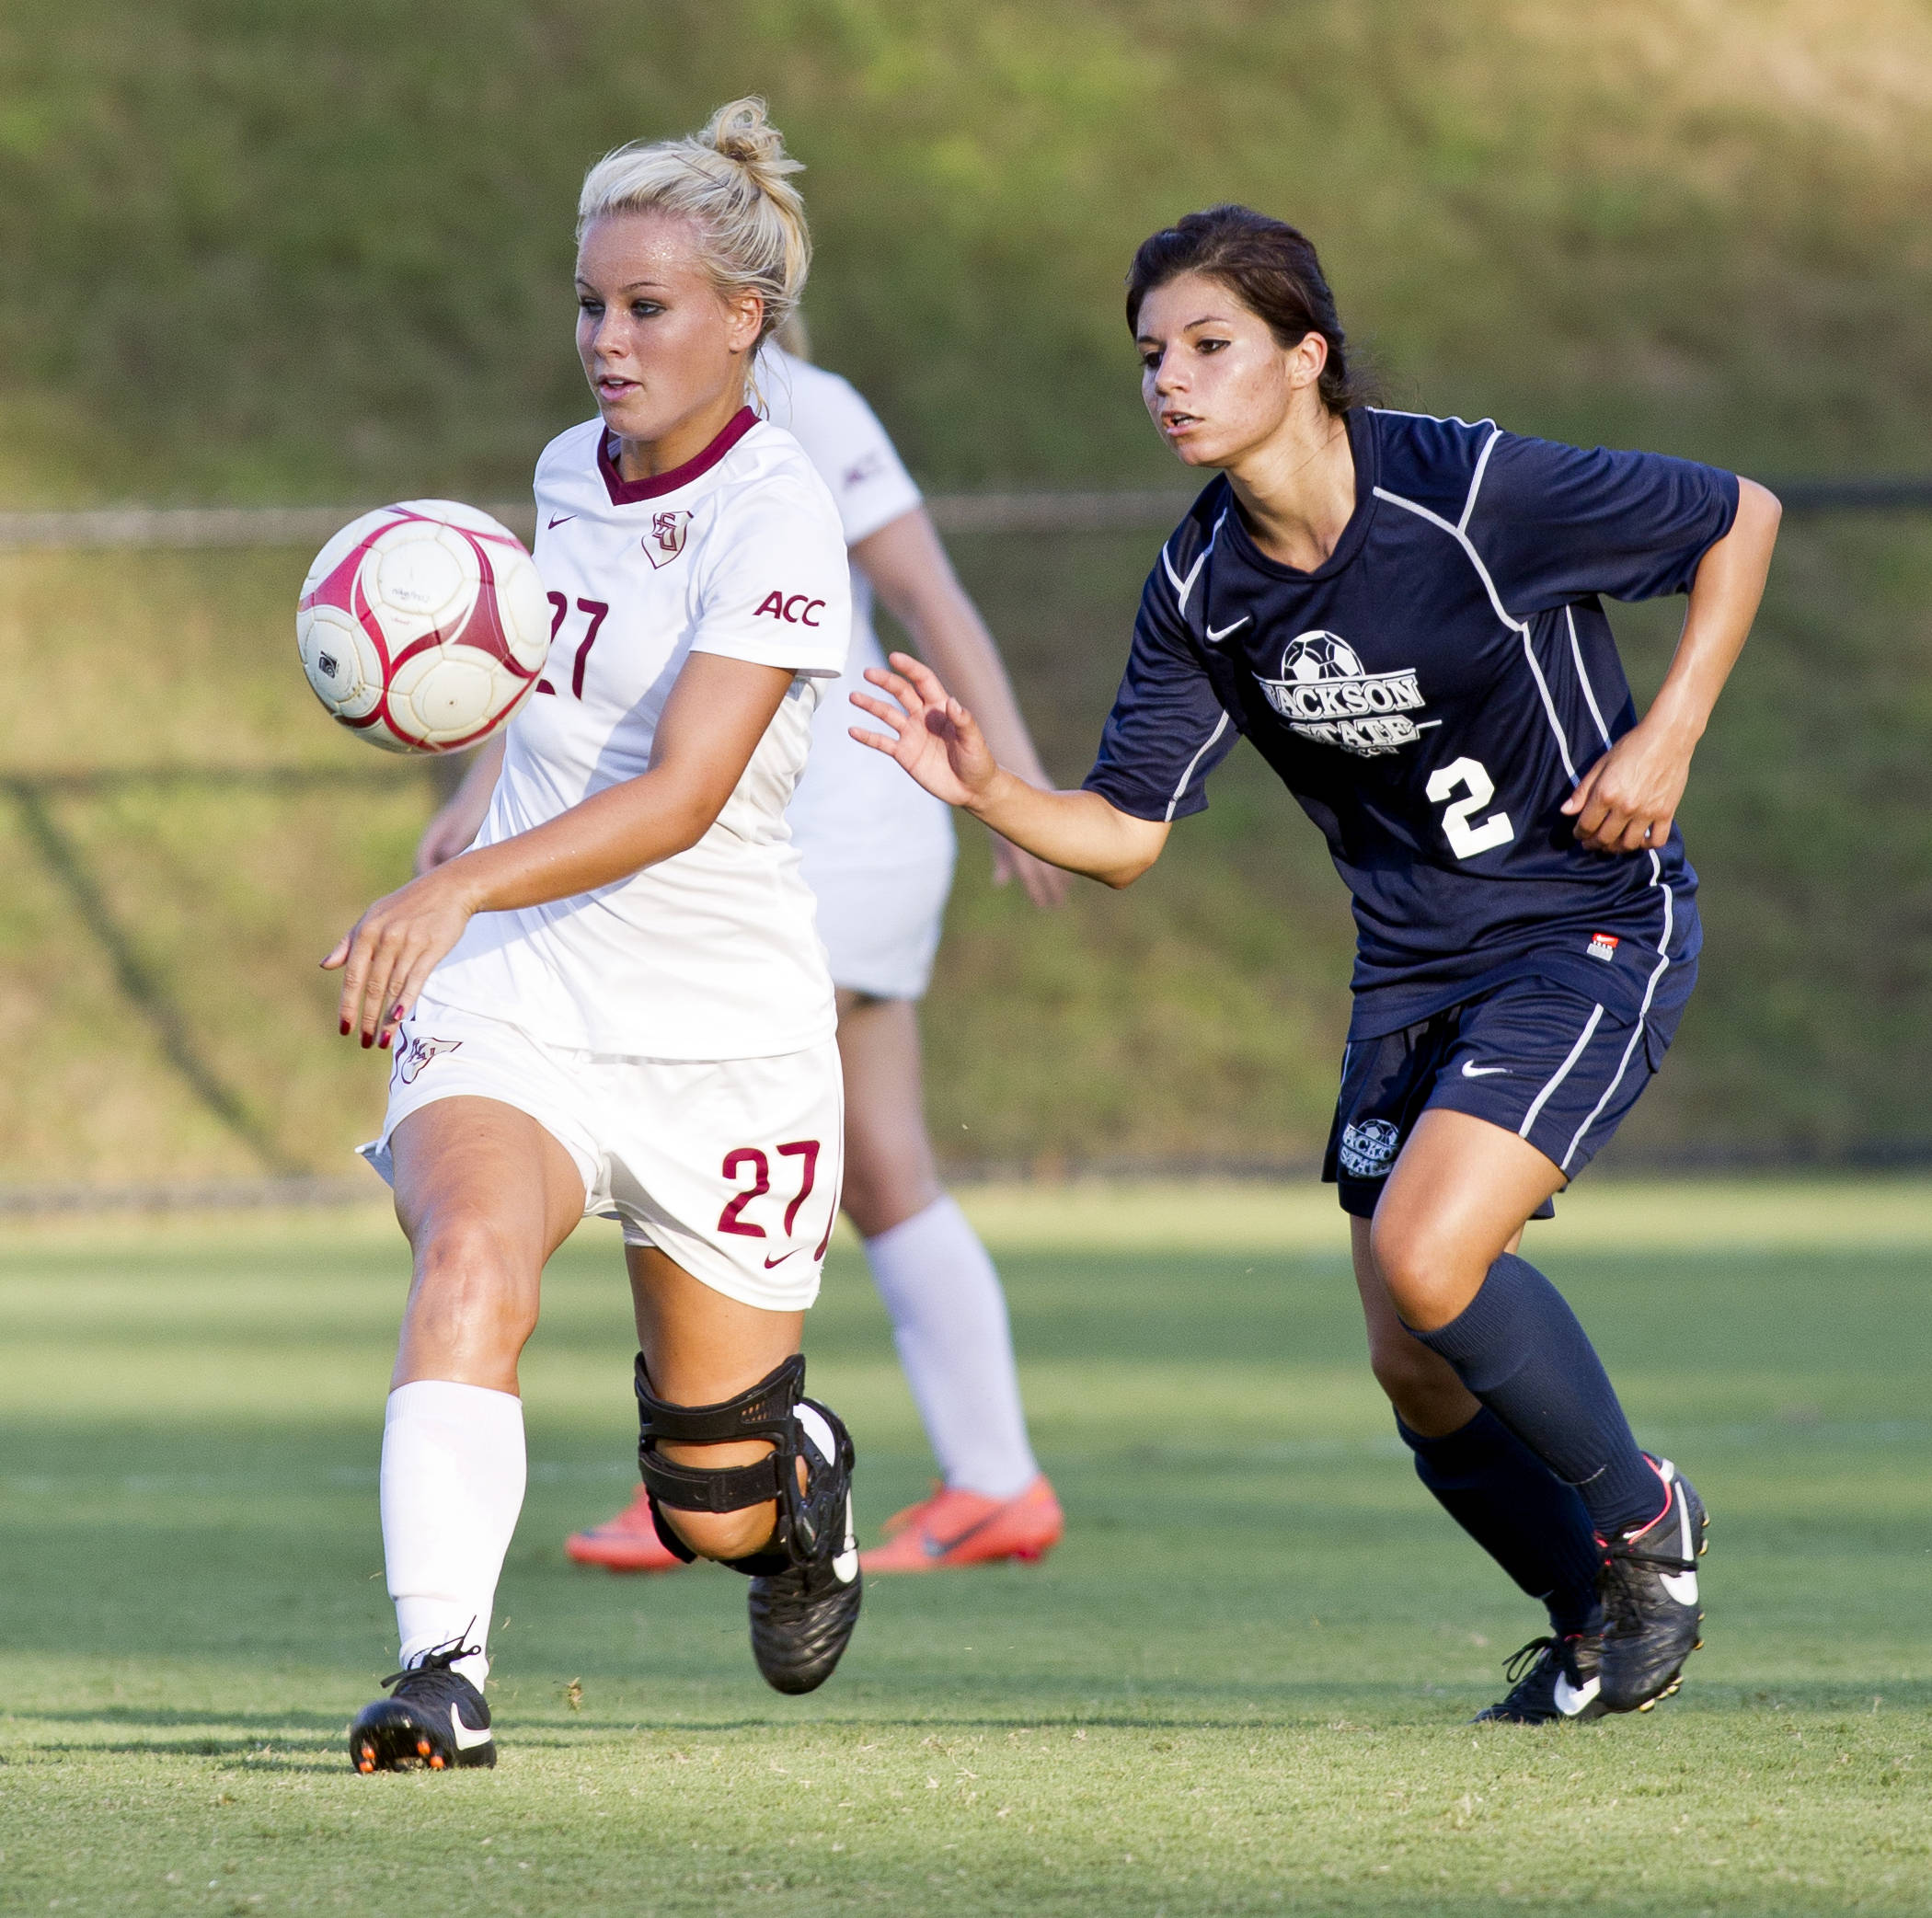 Rylee Hart (27), FSU vs Jackson State, 9/21/12 (Photo by Steve Musco)